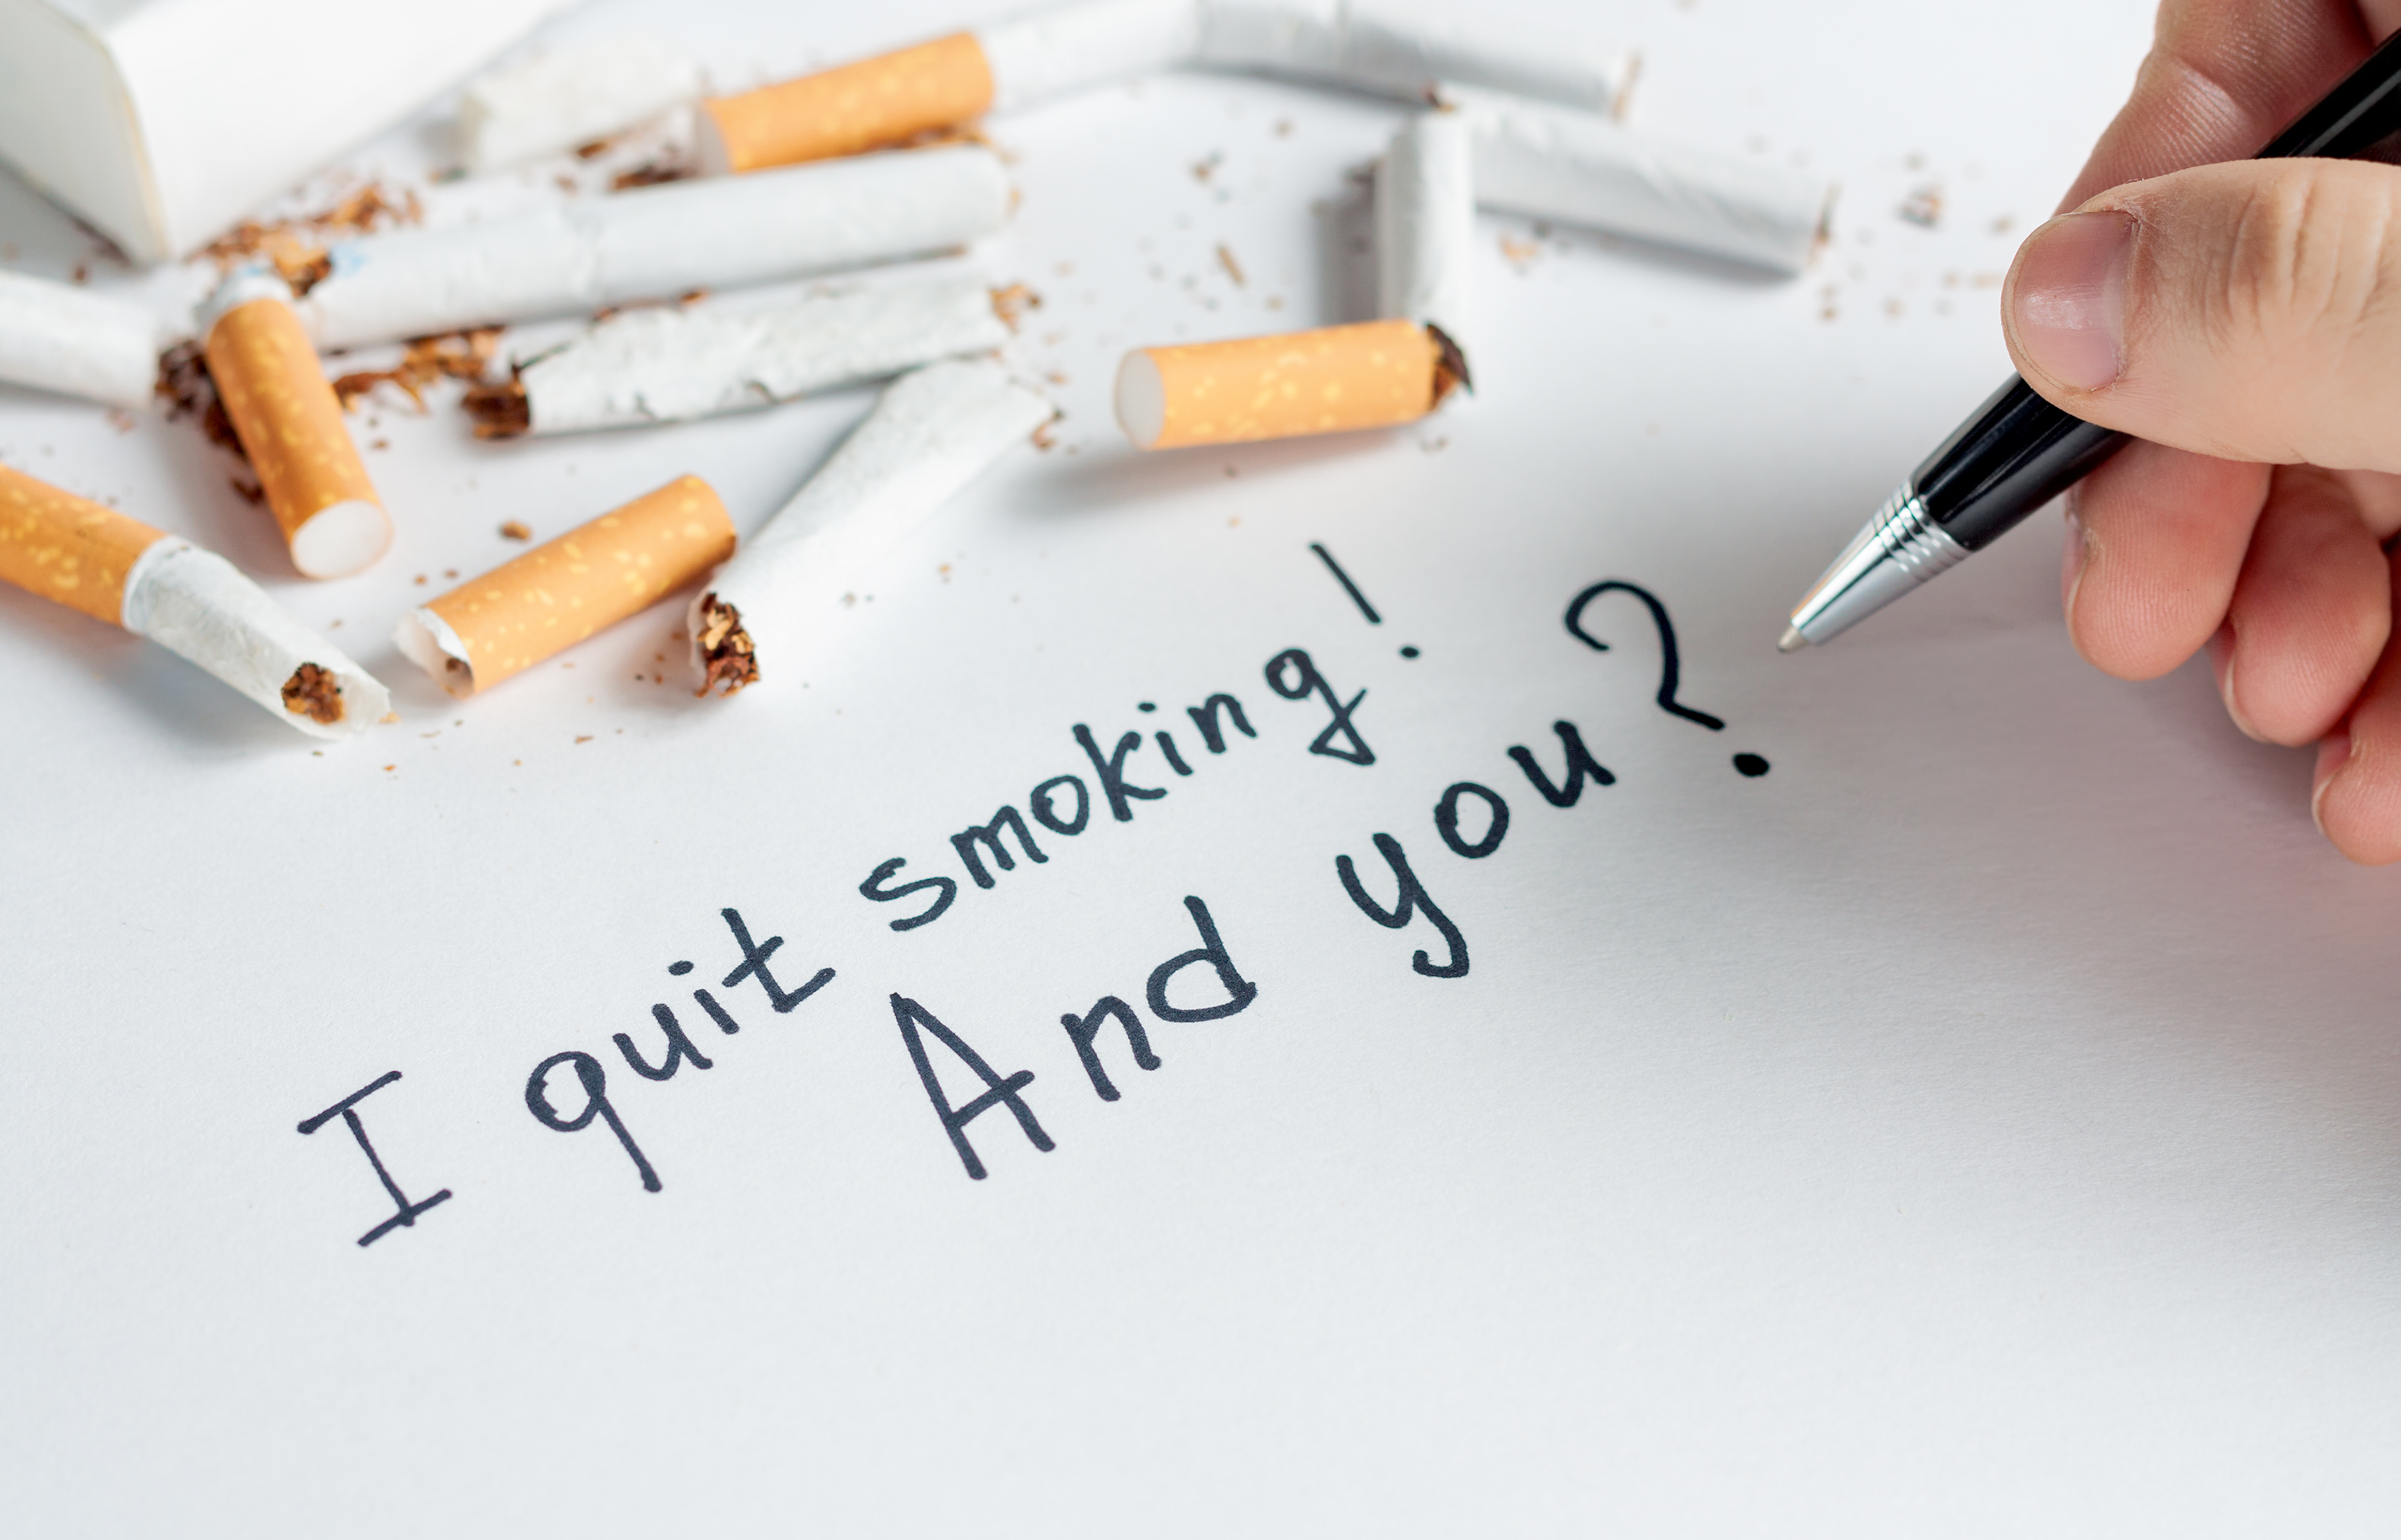 Antismoking background with a heap of broken cigarettes. Quit smoking now